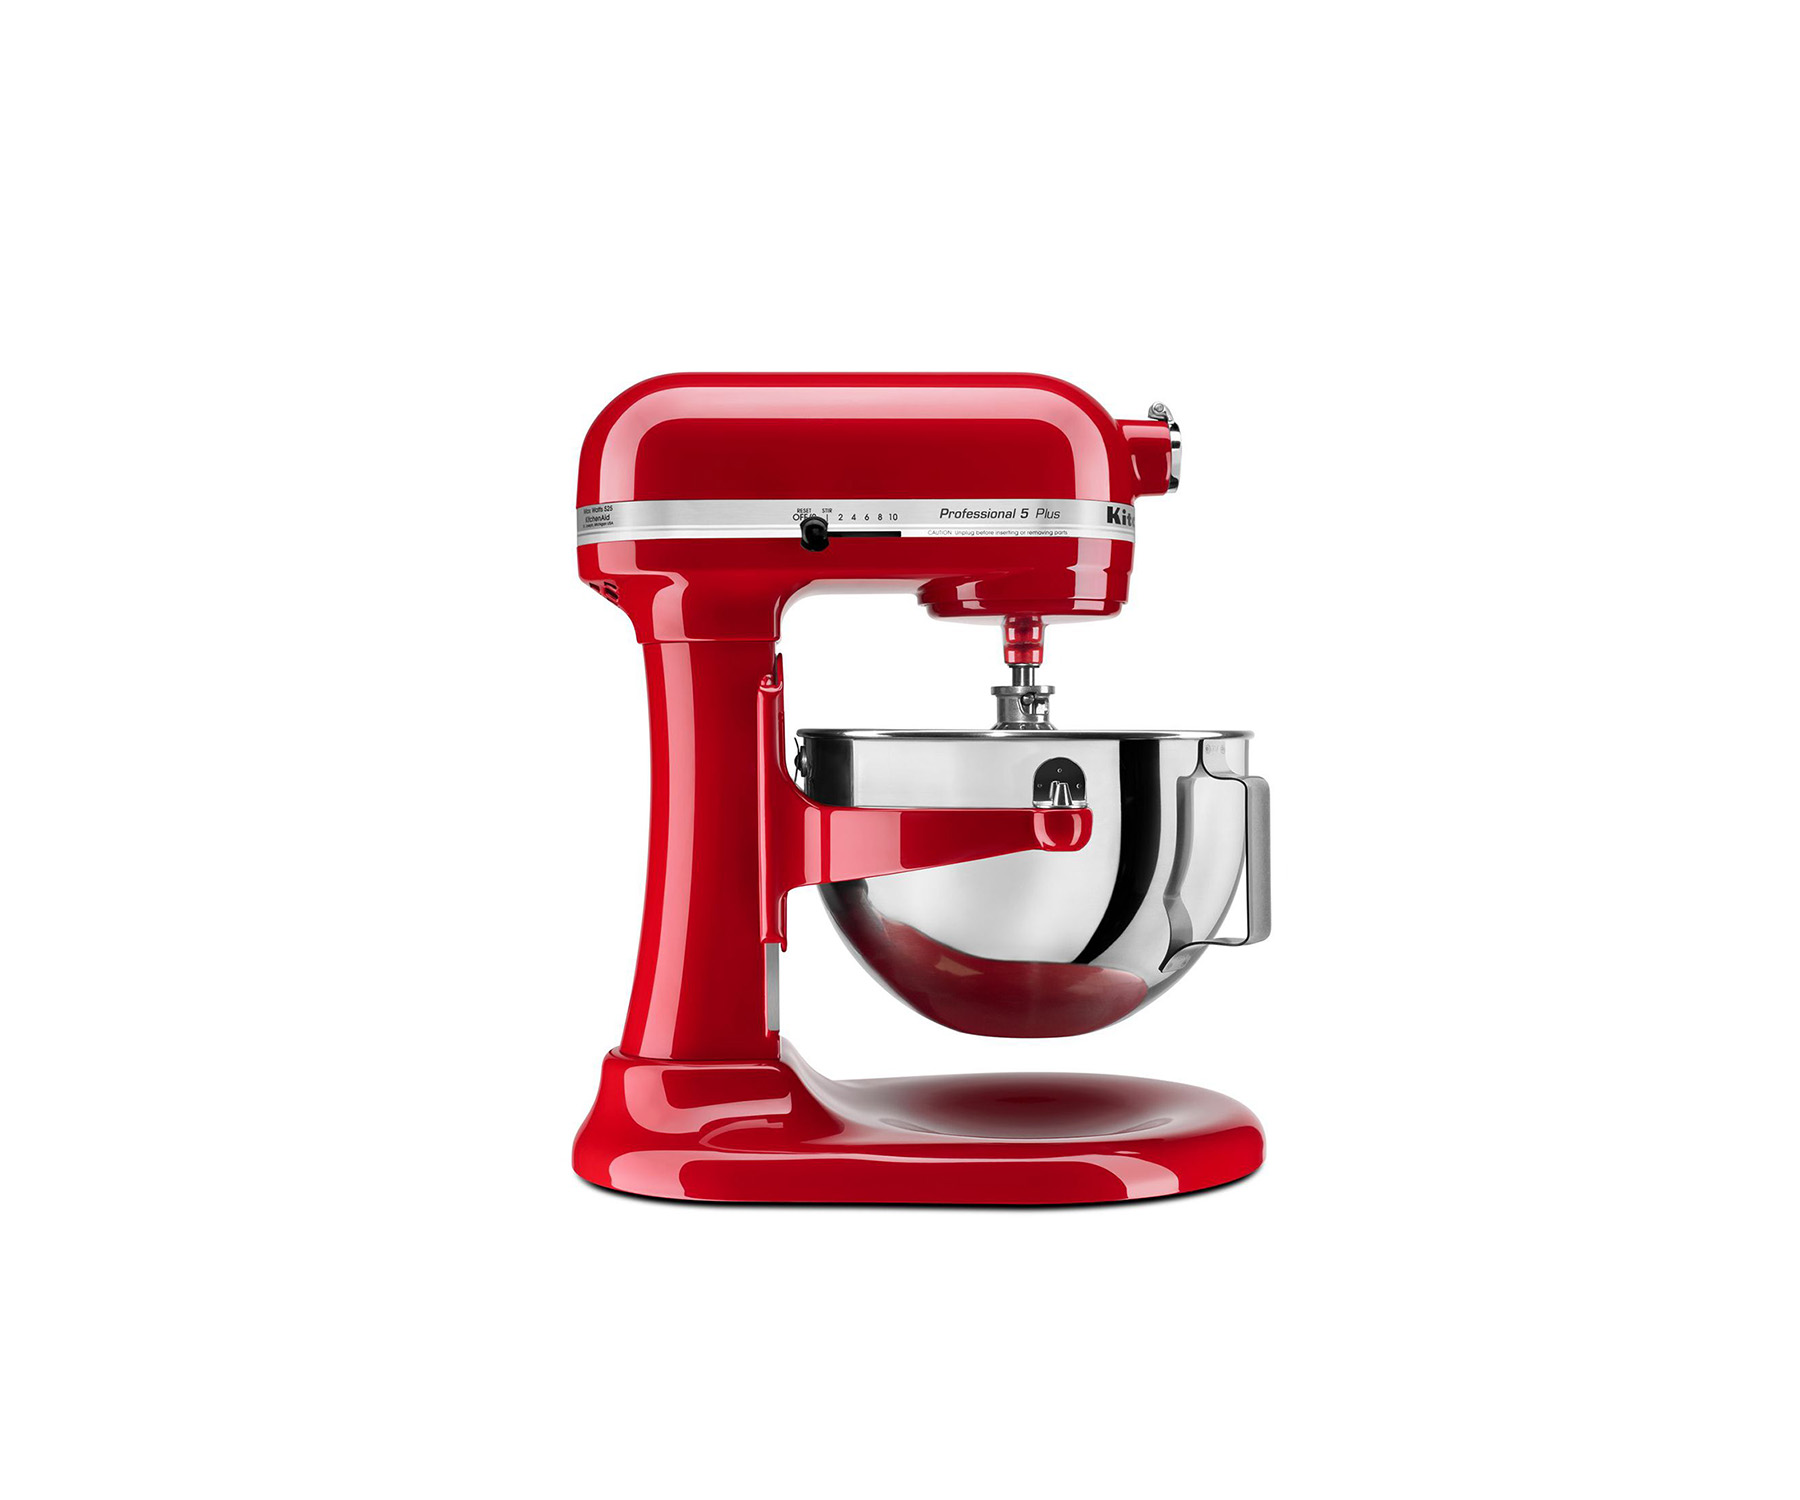 Right Now You Can Buy A Brand New Kitchenaid Stand Mixer